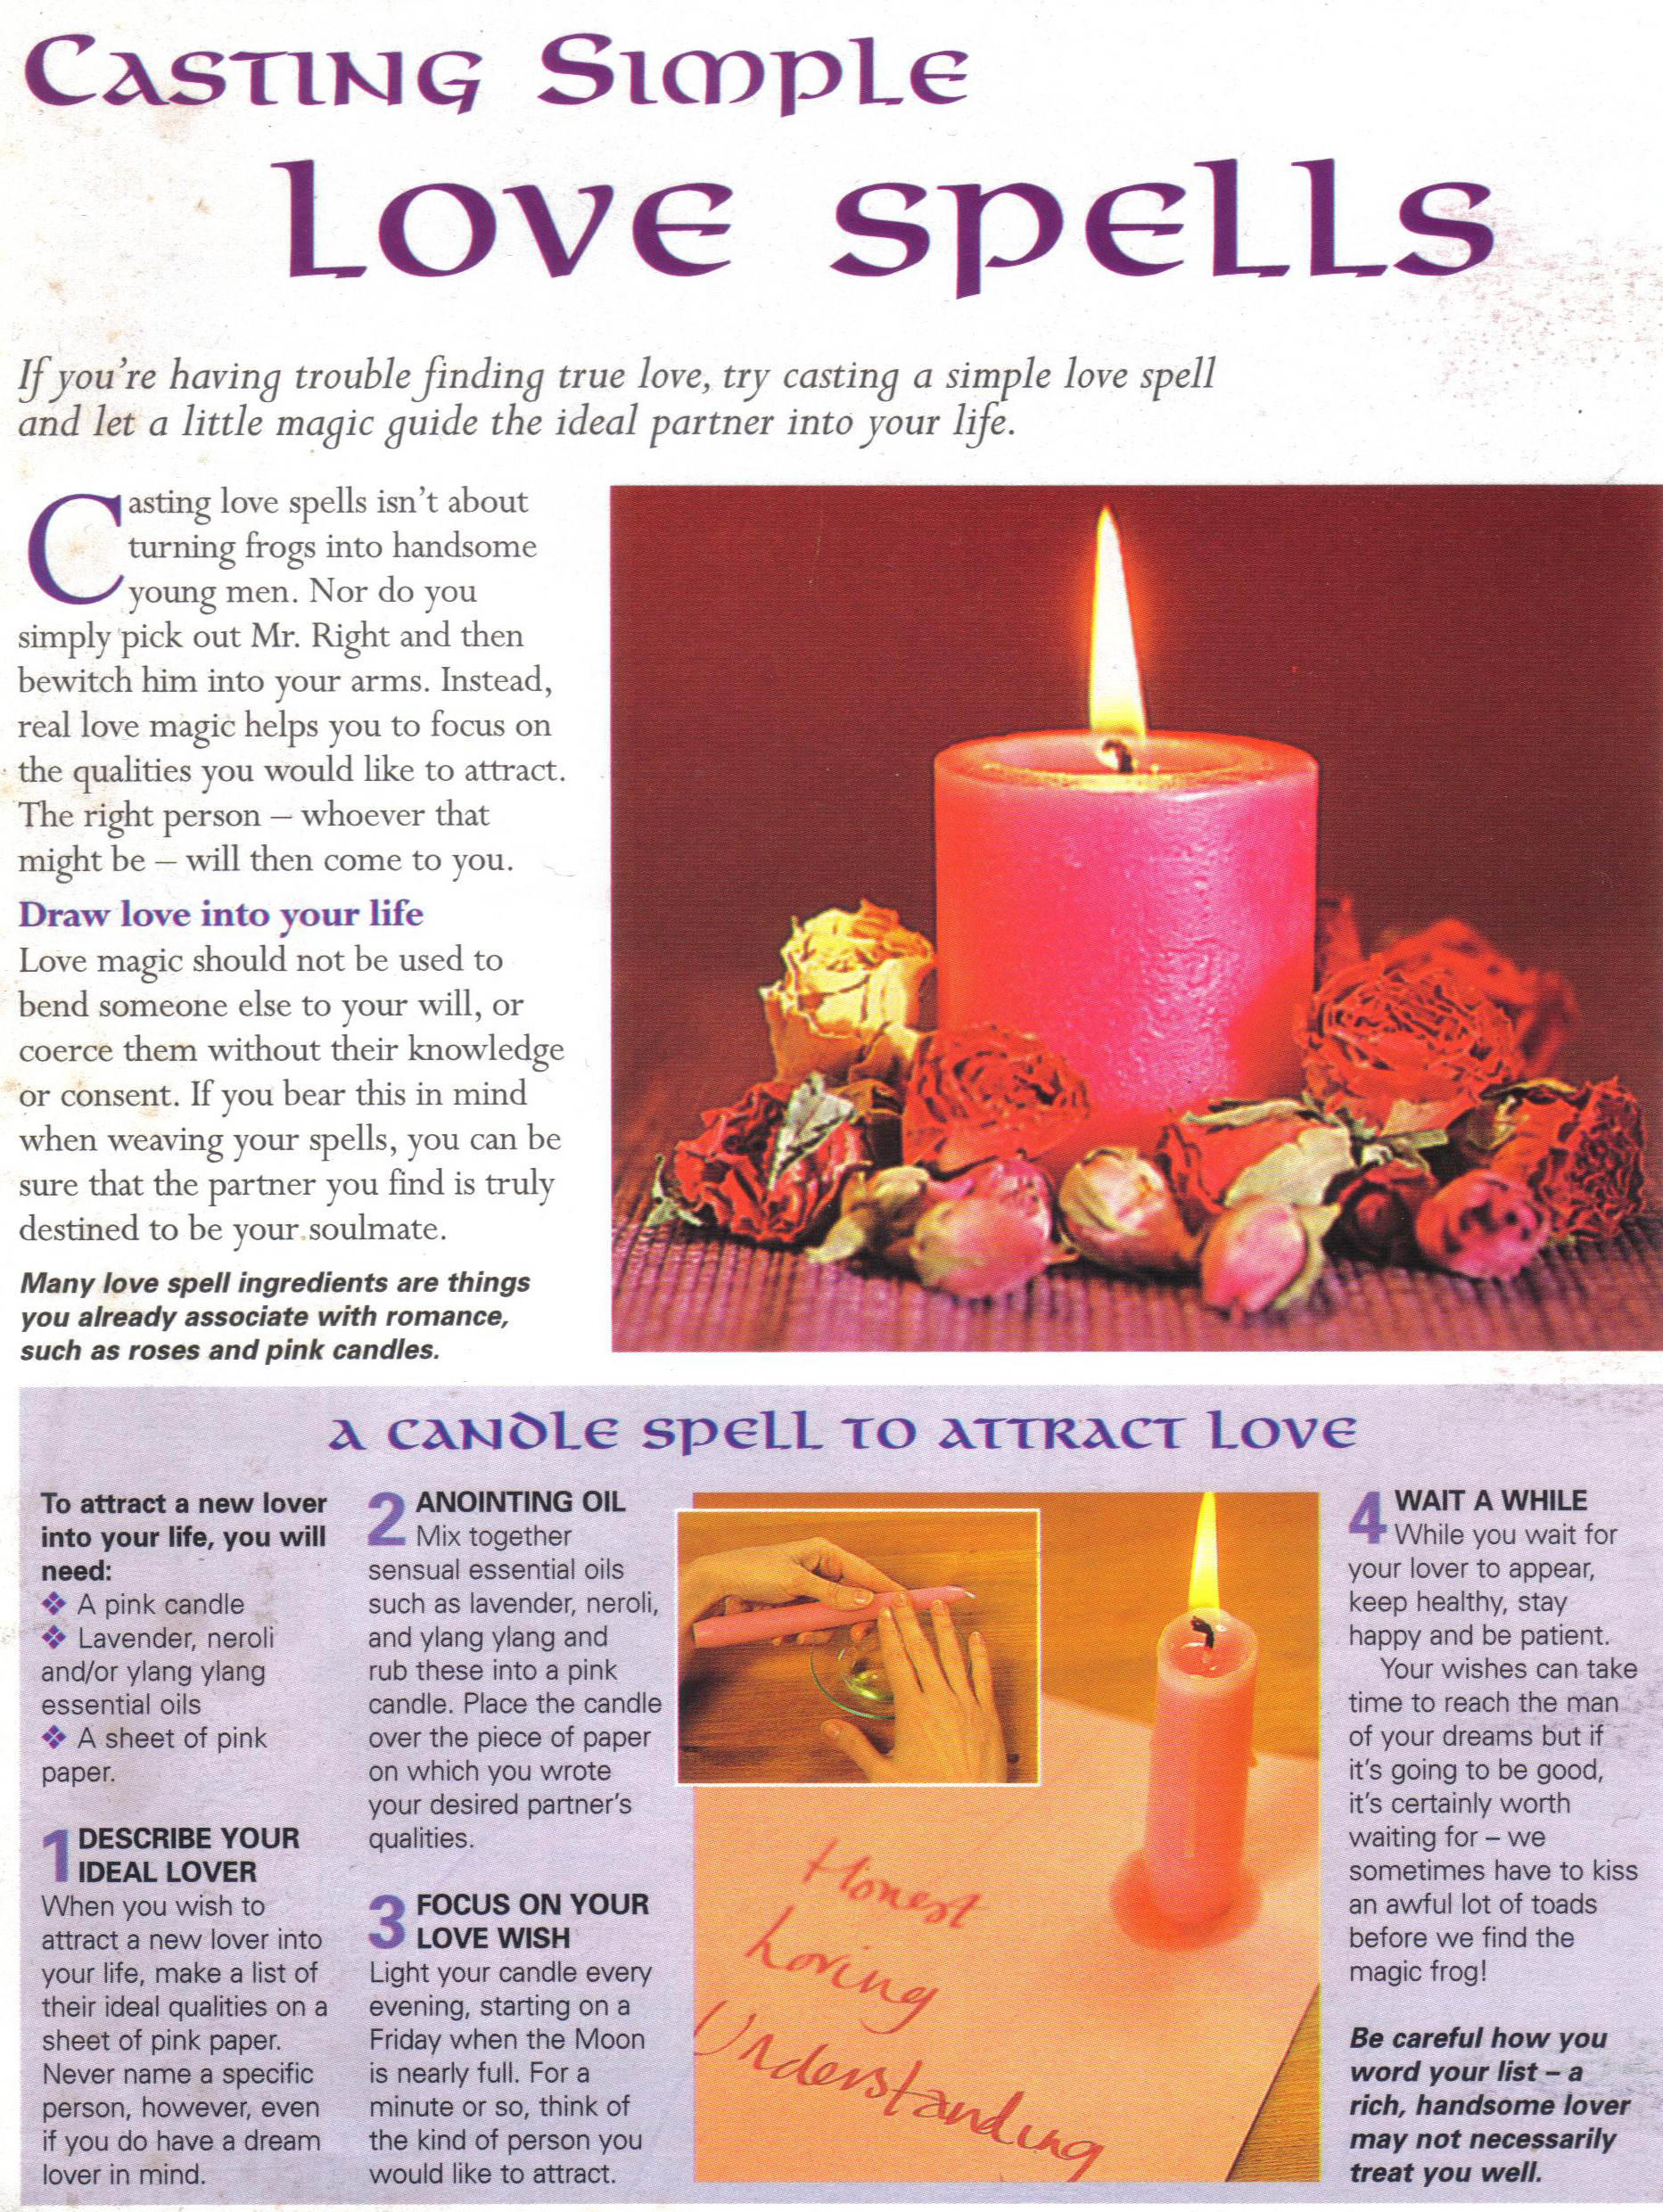 Casting Simple Love Spells